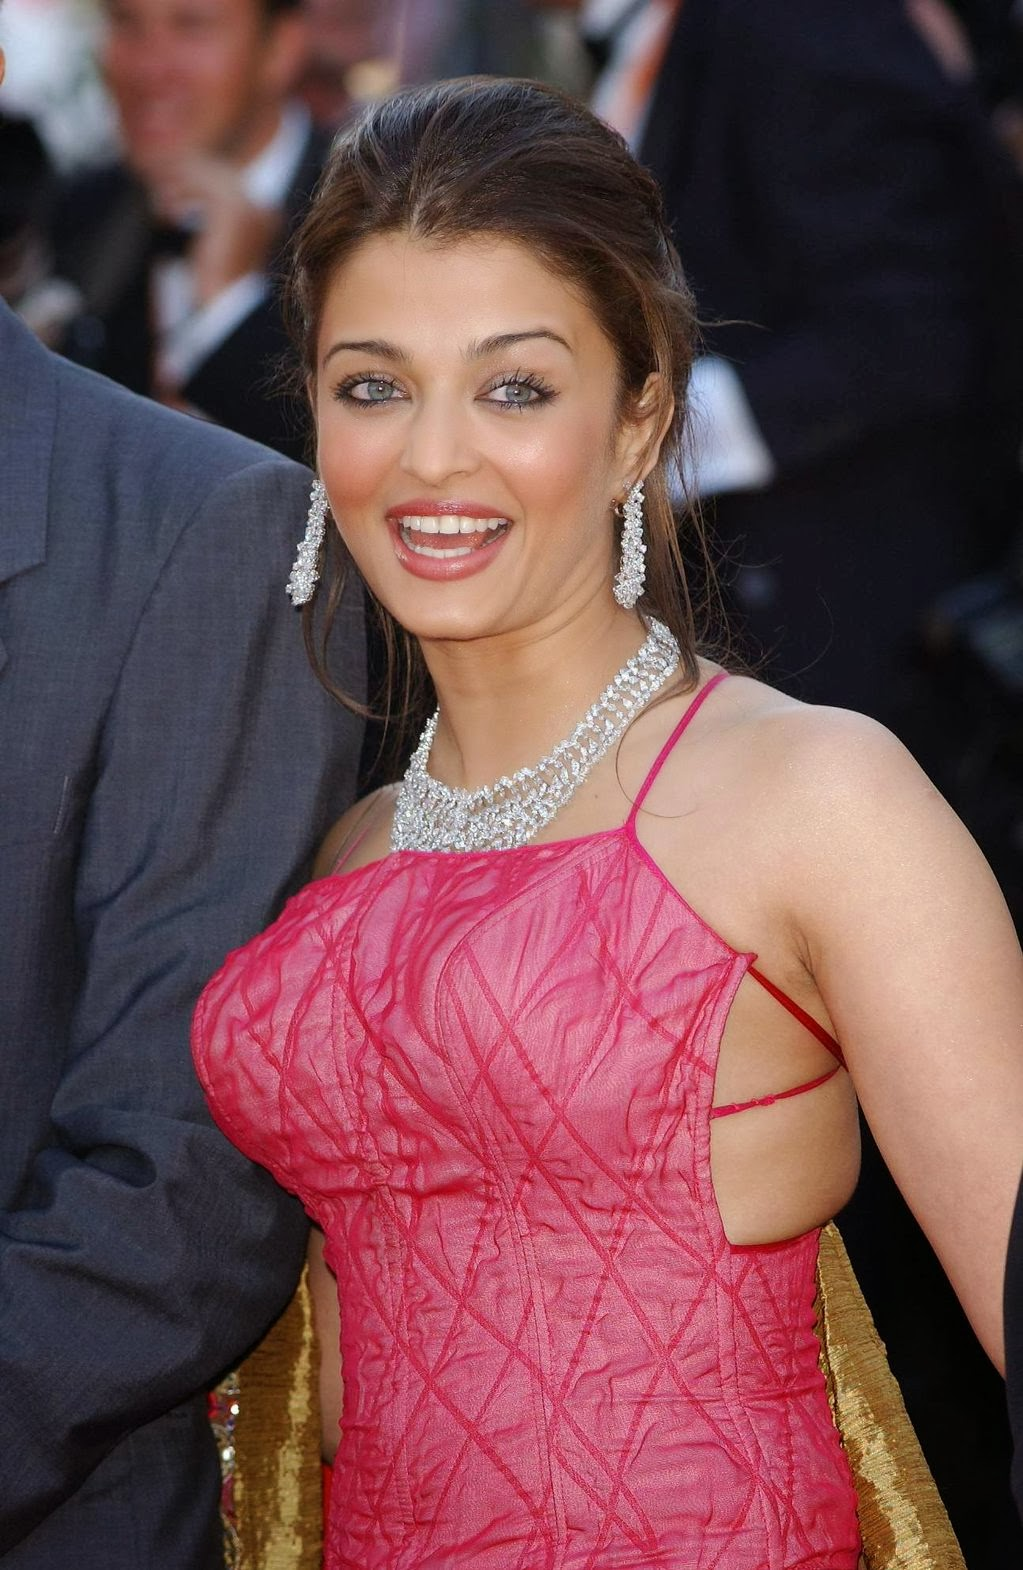 Aishwarya Rai Ki Sexy Photo Hd